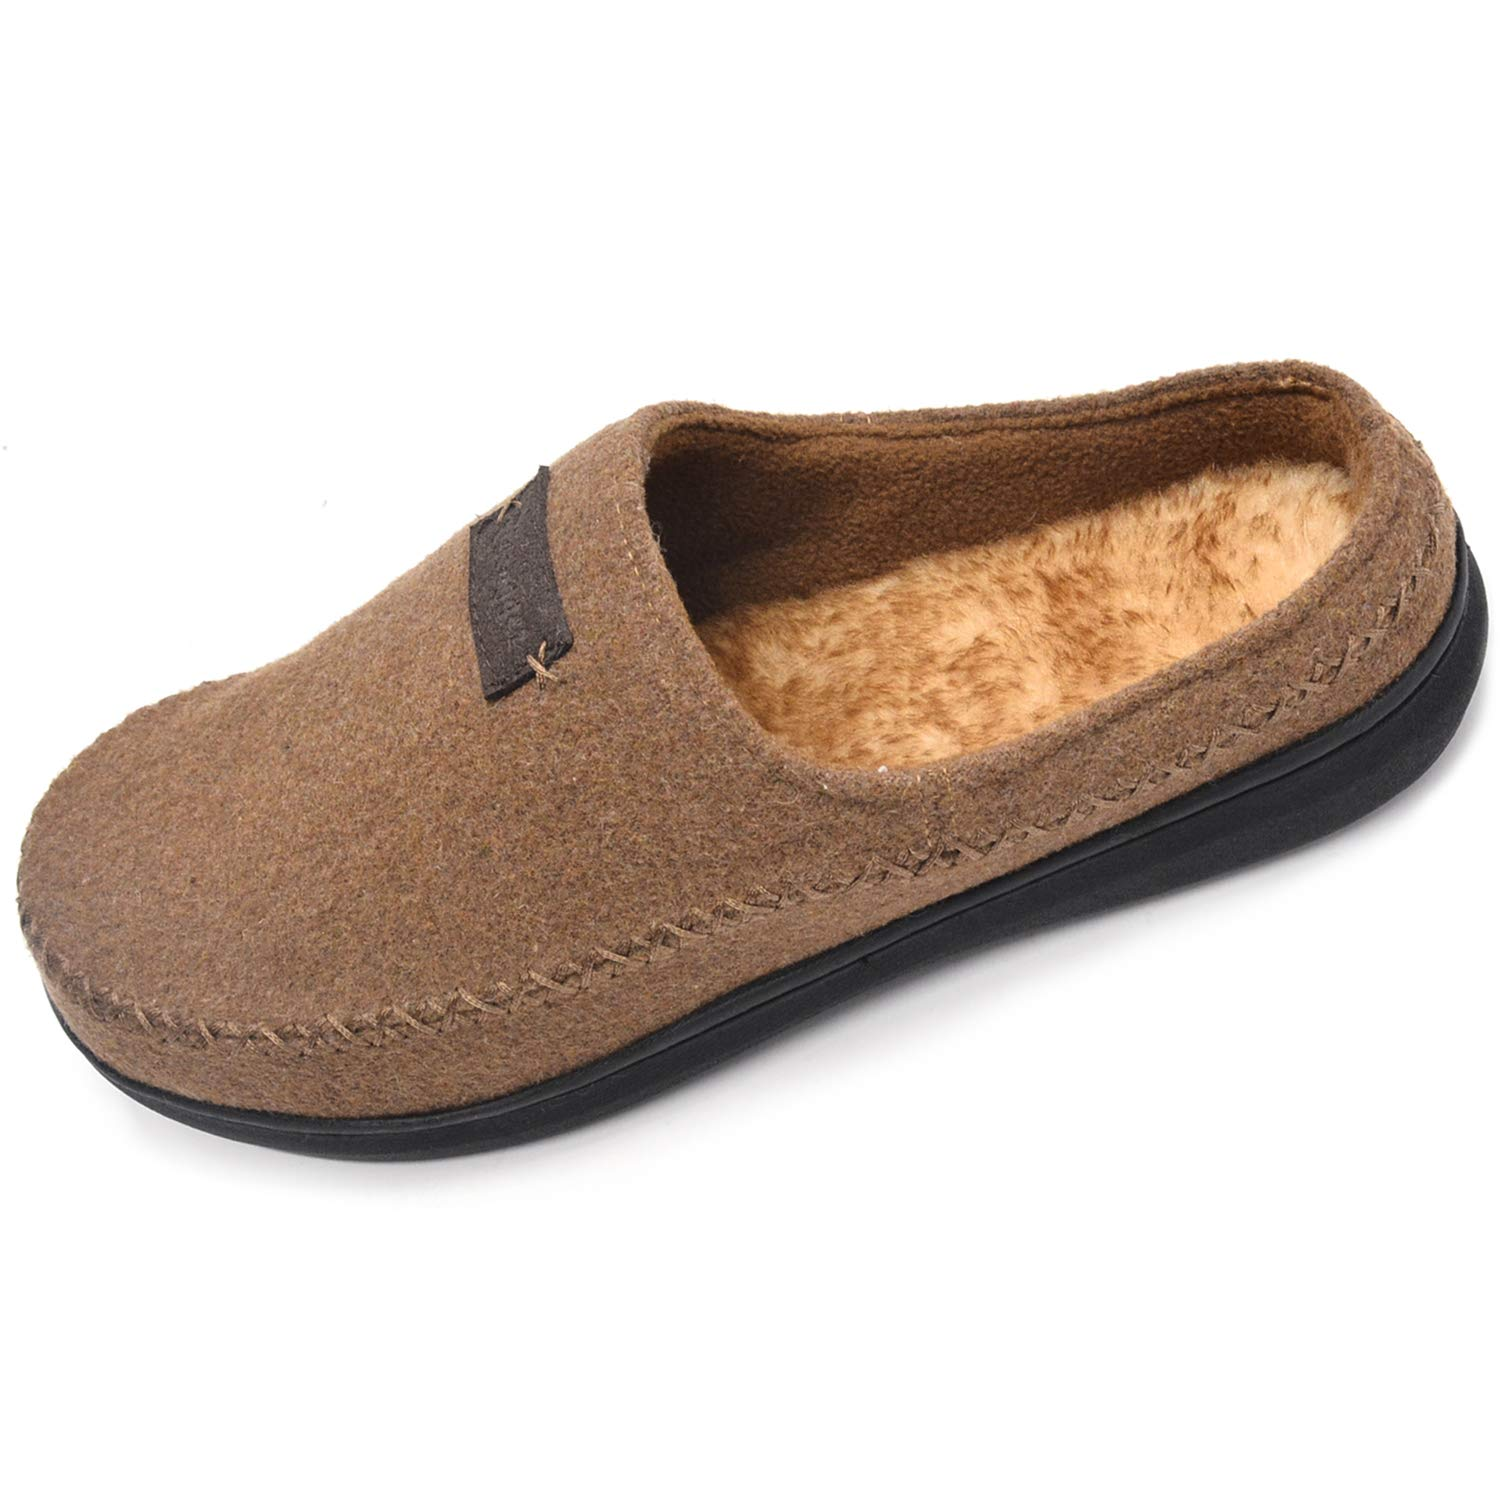 Zigzagger Men's Faux Wool Western Style Memory Foam Indoor Outdoor Clog Moccasin Slip On House Slippers